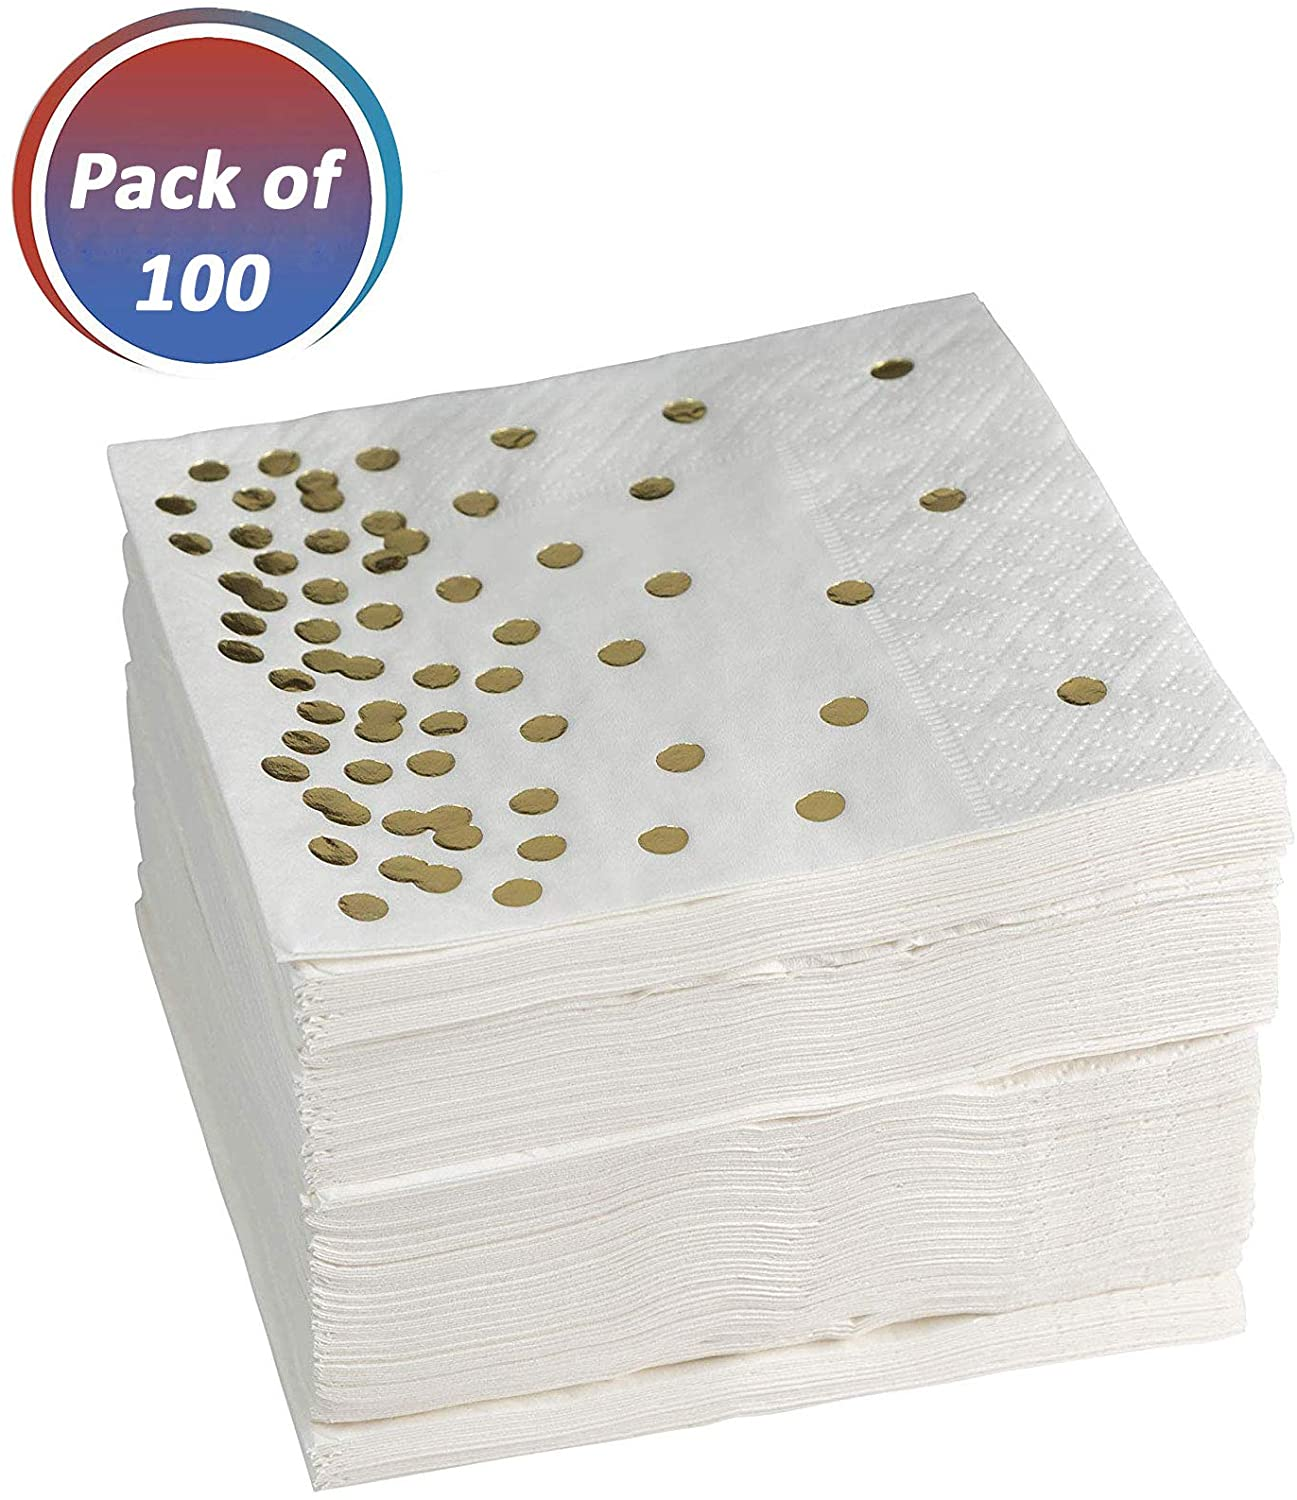 Paper Napkins – Decorative White Napkin With Gold dots – Pack of 100 Disposable Party Napkins – Eco-Friendly & Recyclable – Soft & Food-Grade Paper – Ideal for Weddings, Bridal Showers & Parties